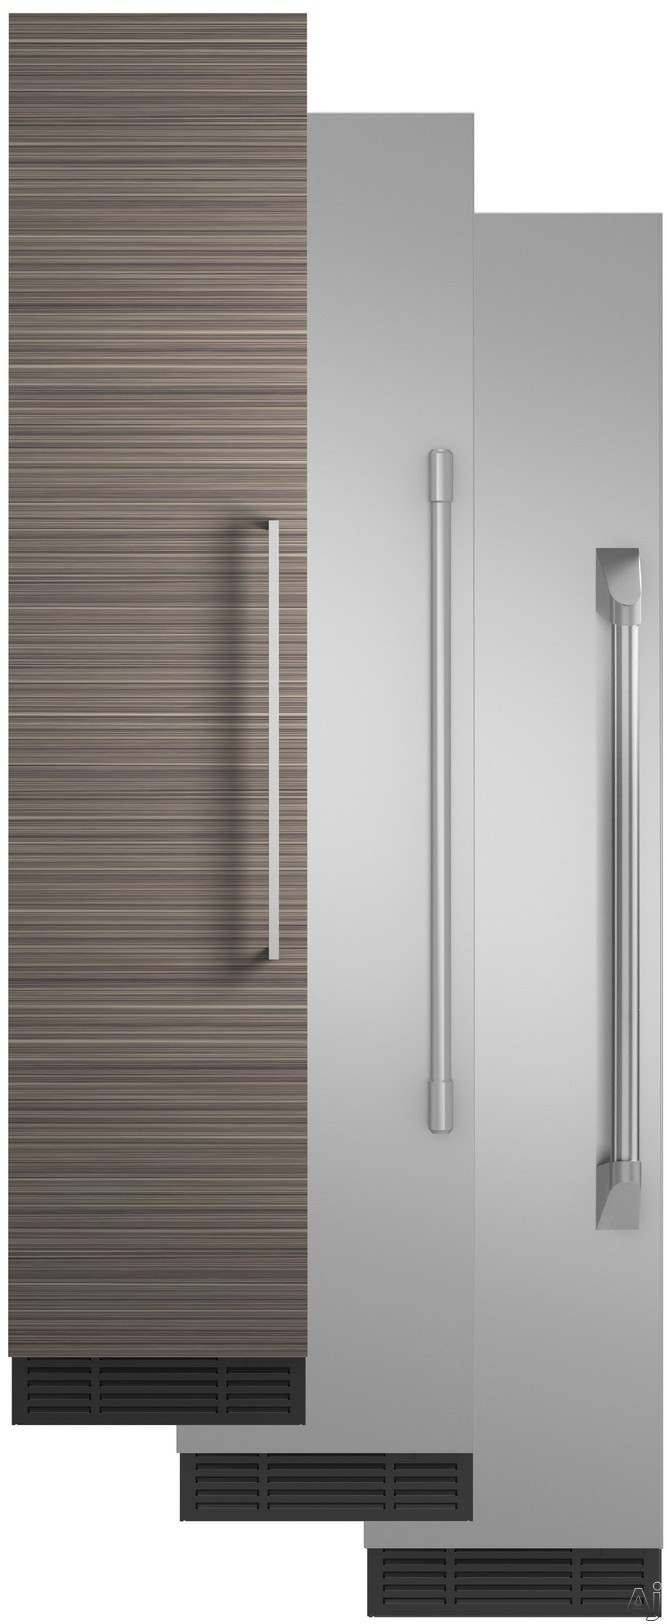 Image of Monogram ZIF180NPKII 18 Inch Panel Ready Freezer Column with Wi-Fi Connectivity, Ice Maker, Water Filtration, Adjustable Spill-Resistant Glass Shelving, Adjustable Door Bins, 3 Wire Baskets, Retrofit Capable, Ramp-Up LED Lighting, Sabbath Mode and 8.4 cu.